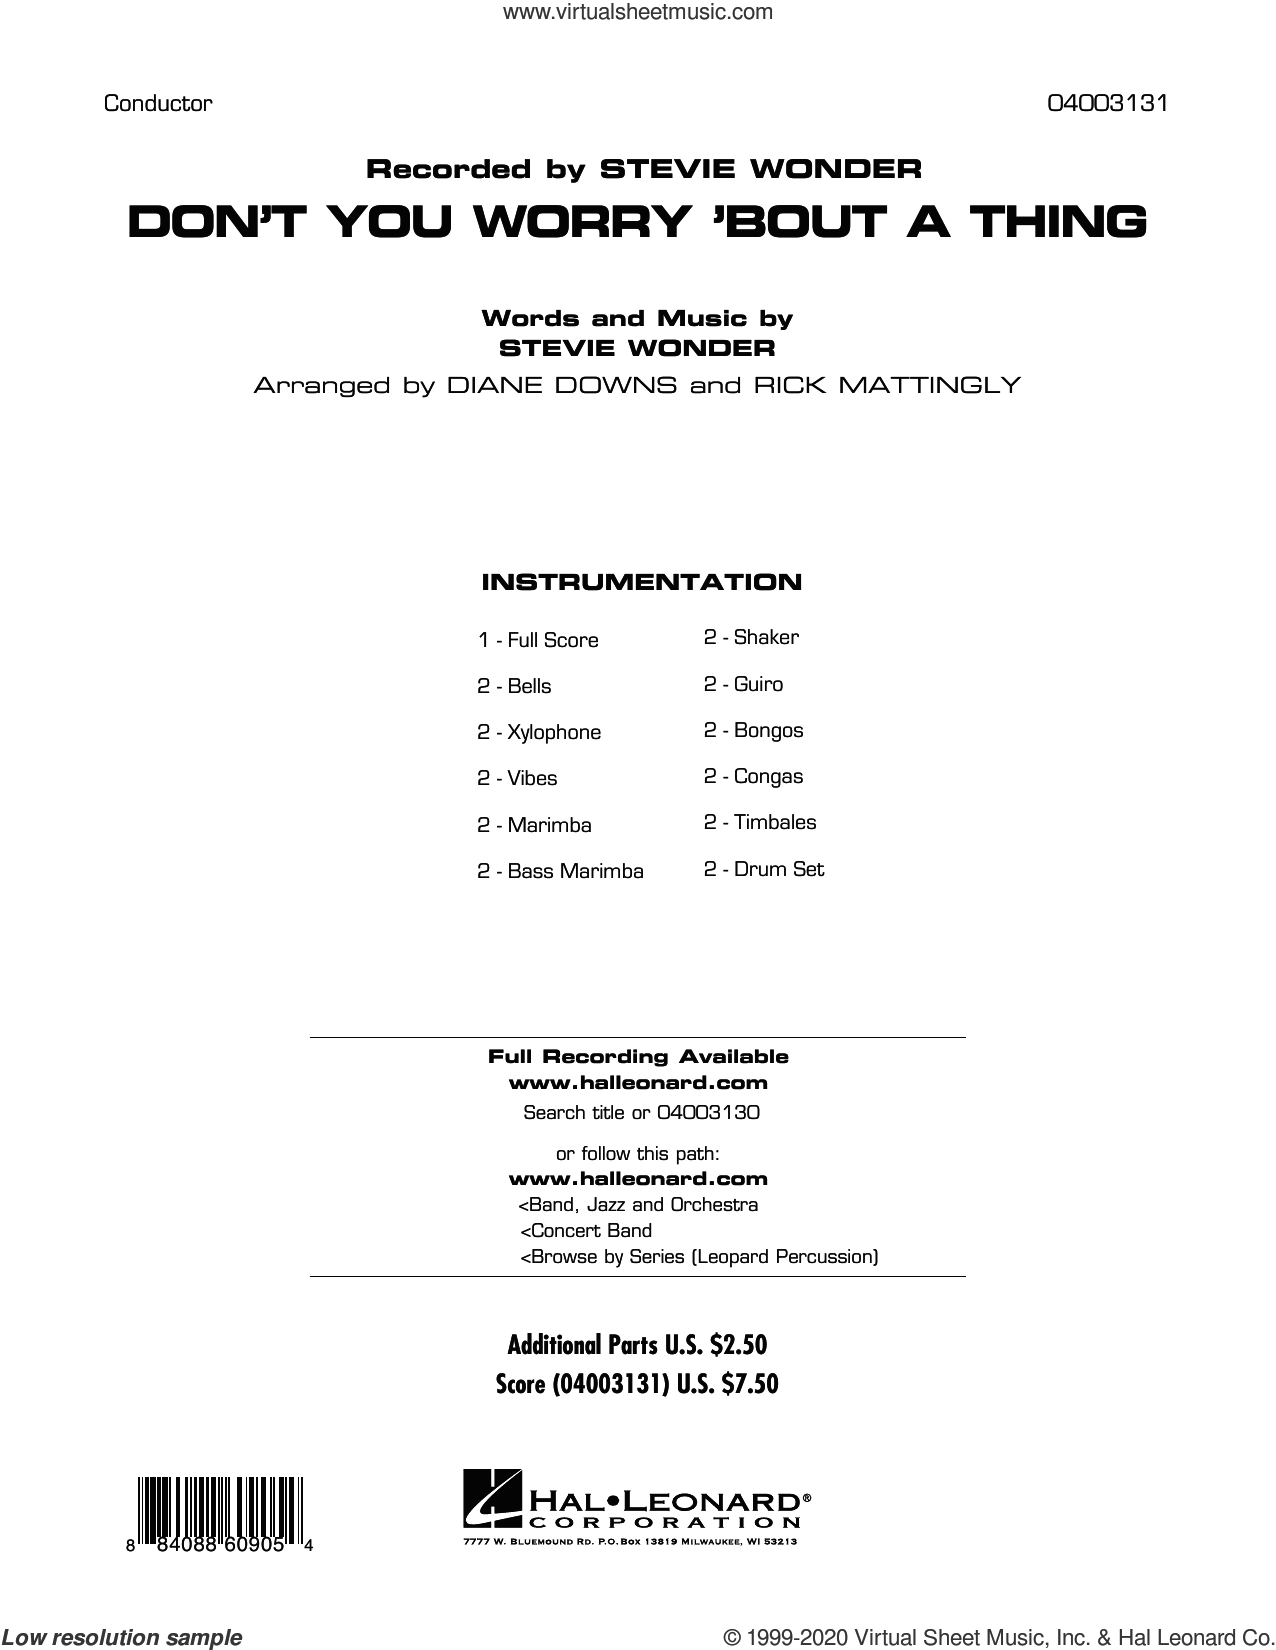 Don't You Worry 'Bout a Thing (COMPLETE) sheet music for concert band by Stevie Wonder, Diane Downs and Rick Mattingly, intermediate skill level